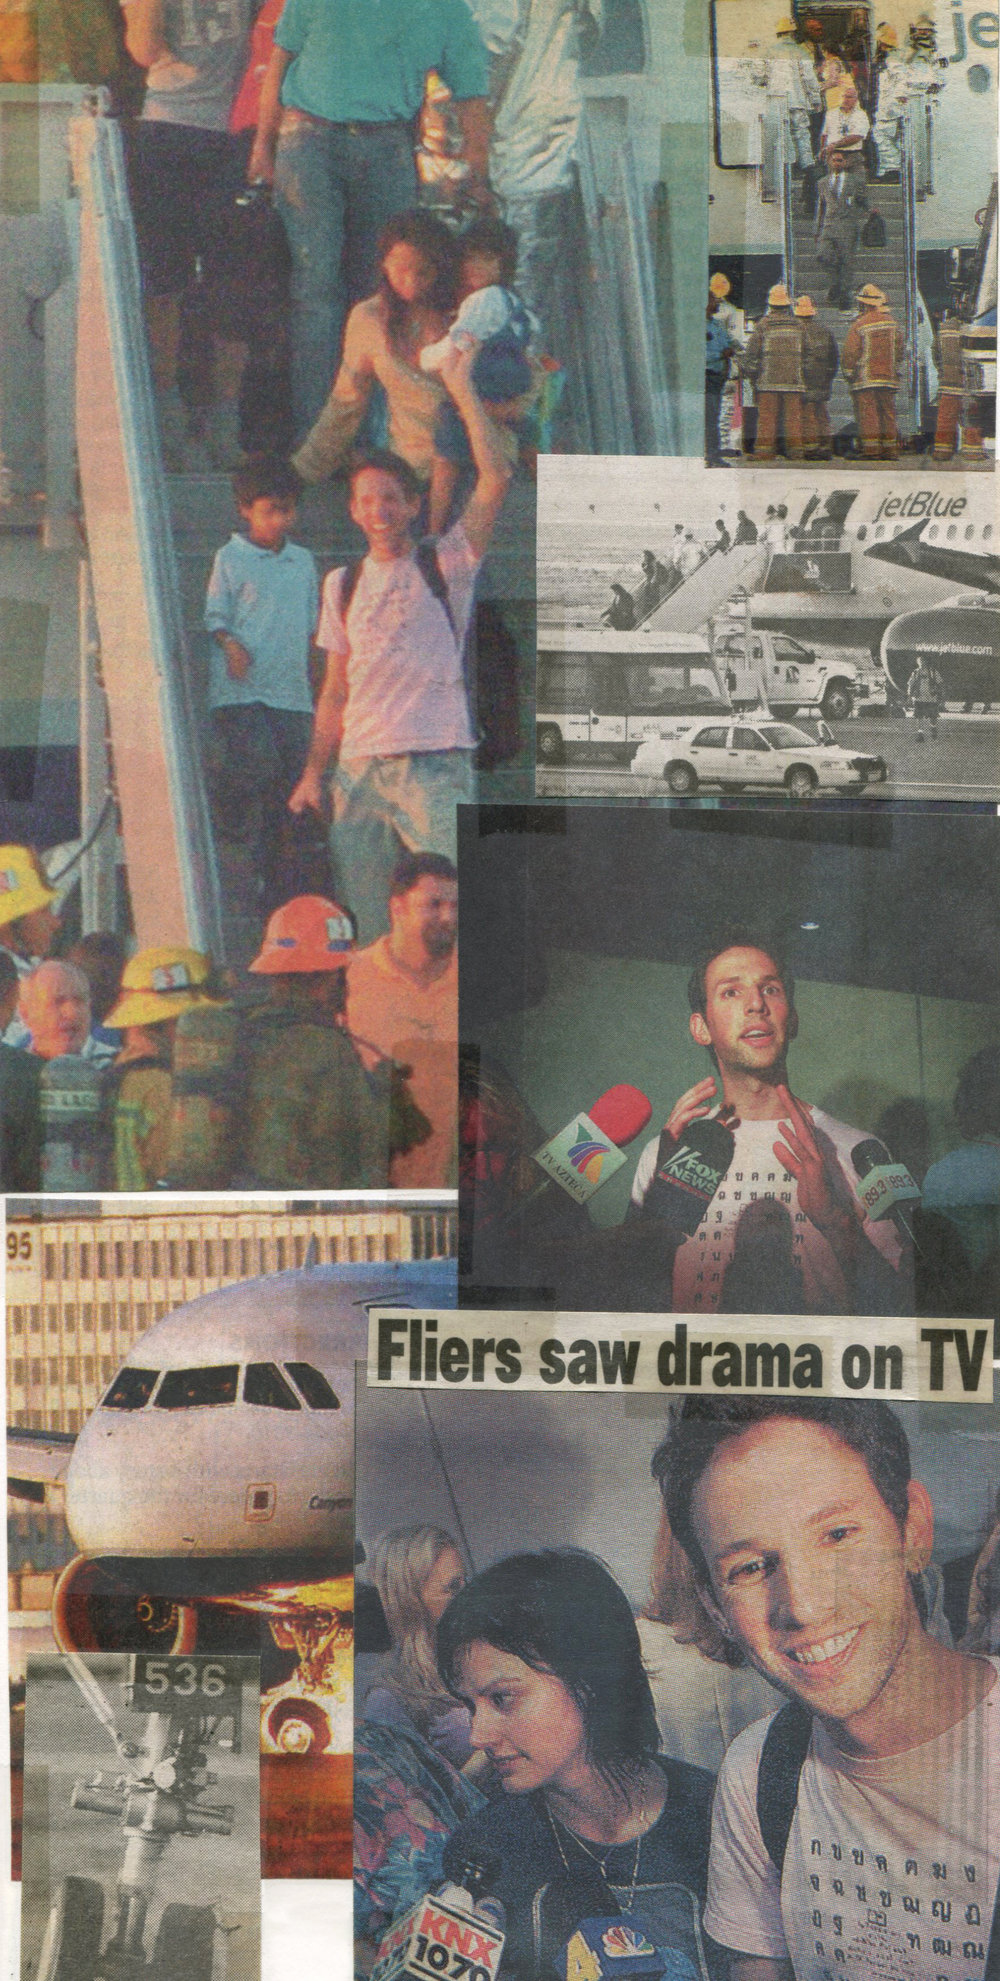 9_22_05 - Jet Blue Newspaper Collage.jpg